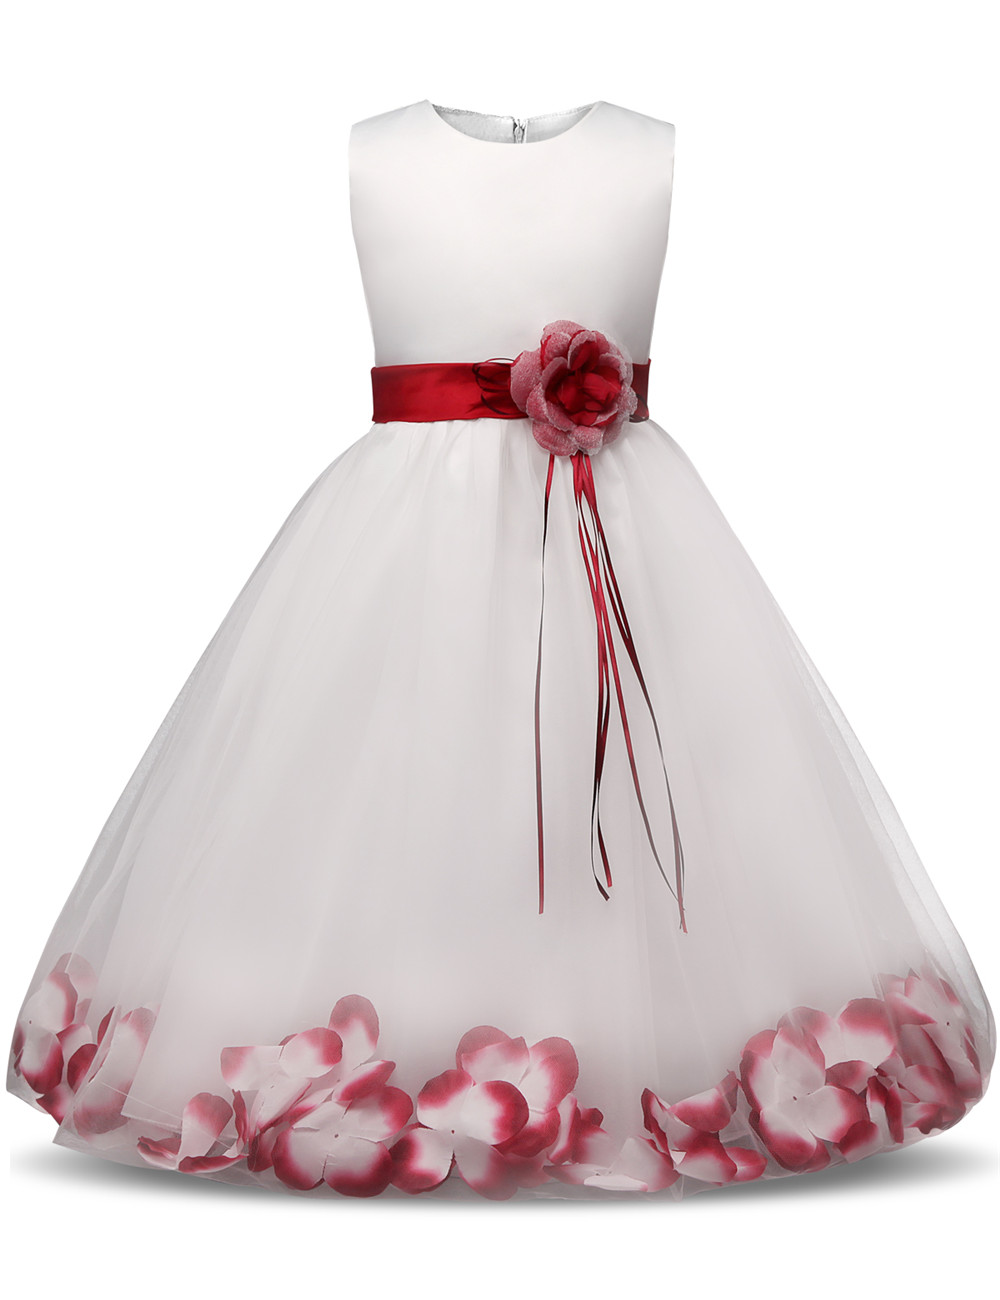 Flower Girl Baby Wedding Dress Children's Clothing Girl Party Costume Evening Formal Dress Kids Clothes Fancy Teenage Girl Gown 5 16y teenage girls white long high waist flower princess wedding dress kid prom costume formal gown clothes for girl ceremony